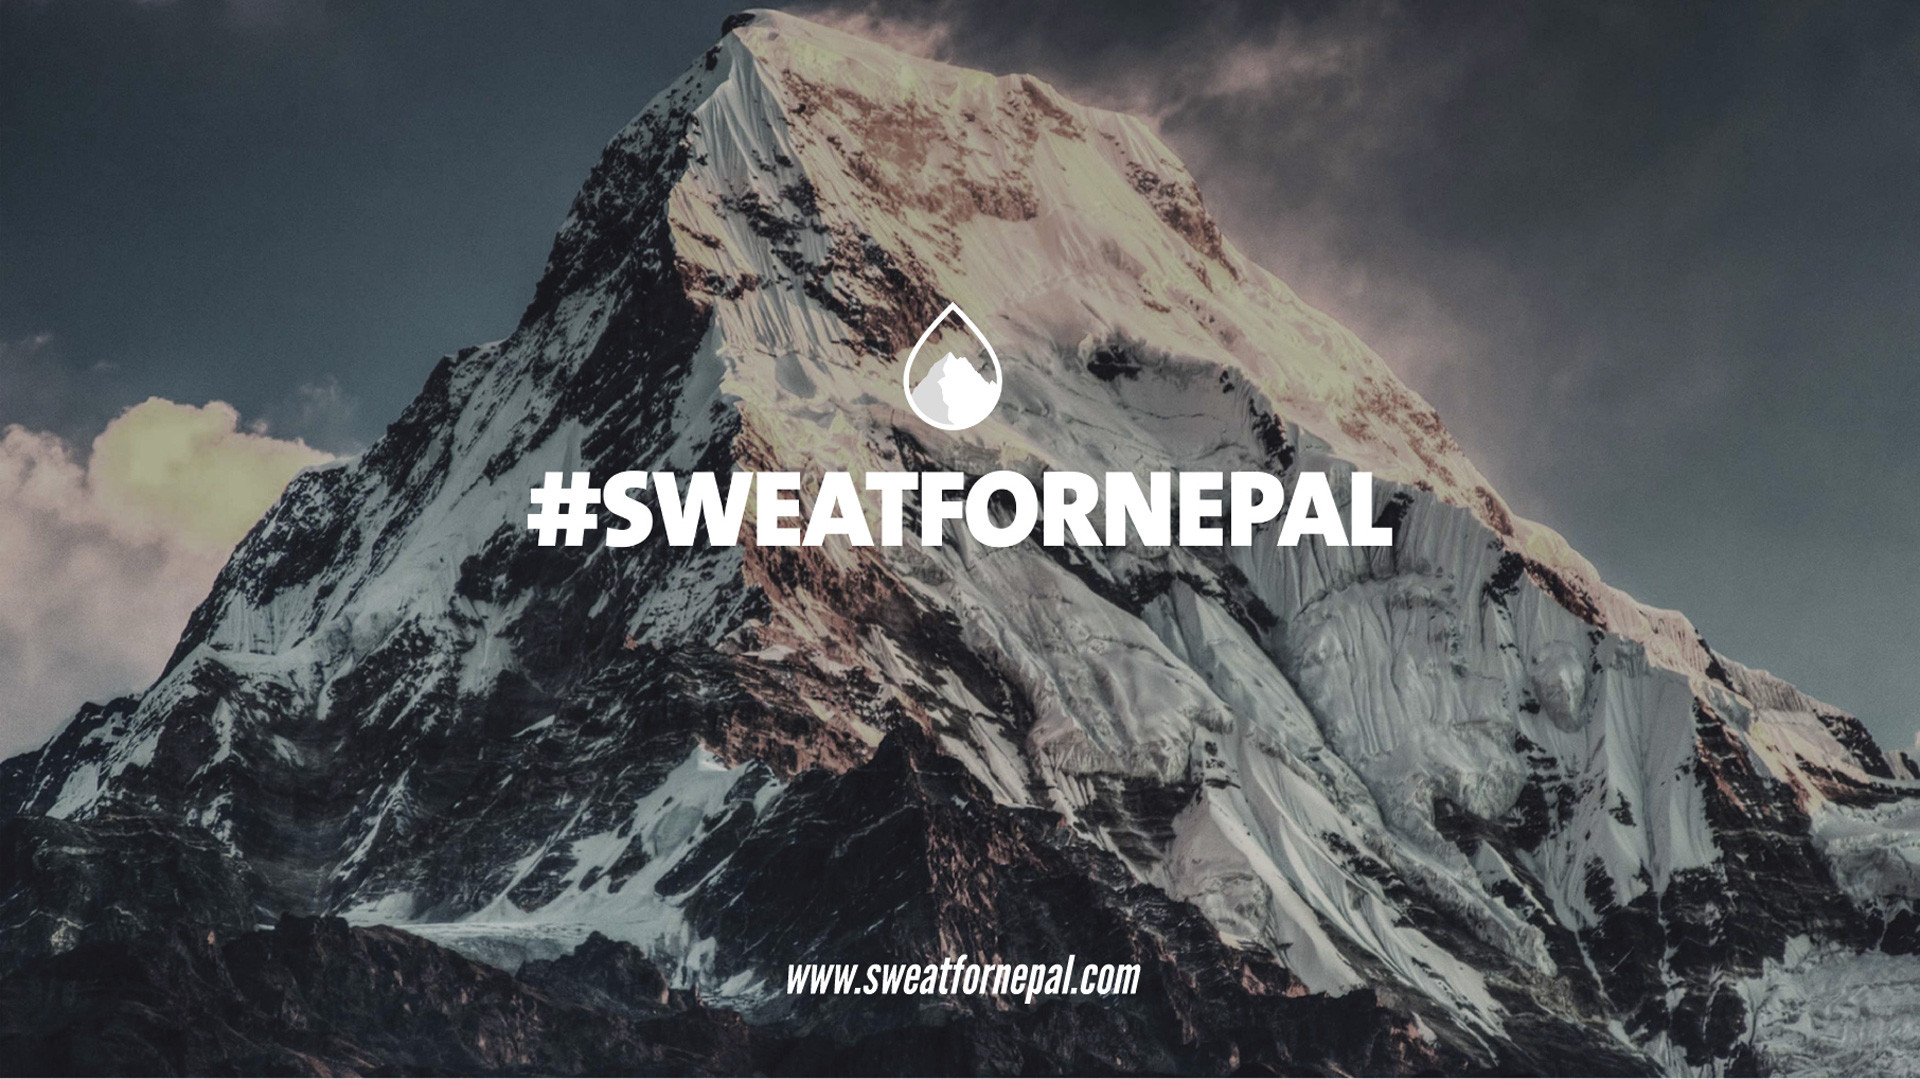 sweat for nepal sweatfornepal banner mountain background